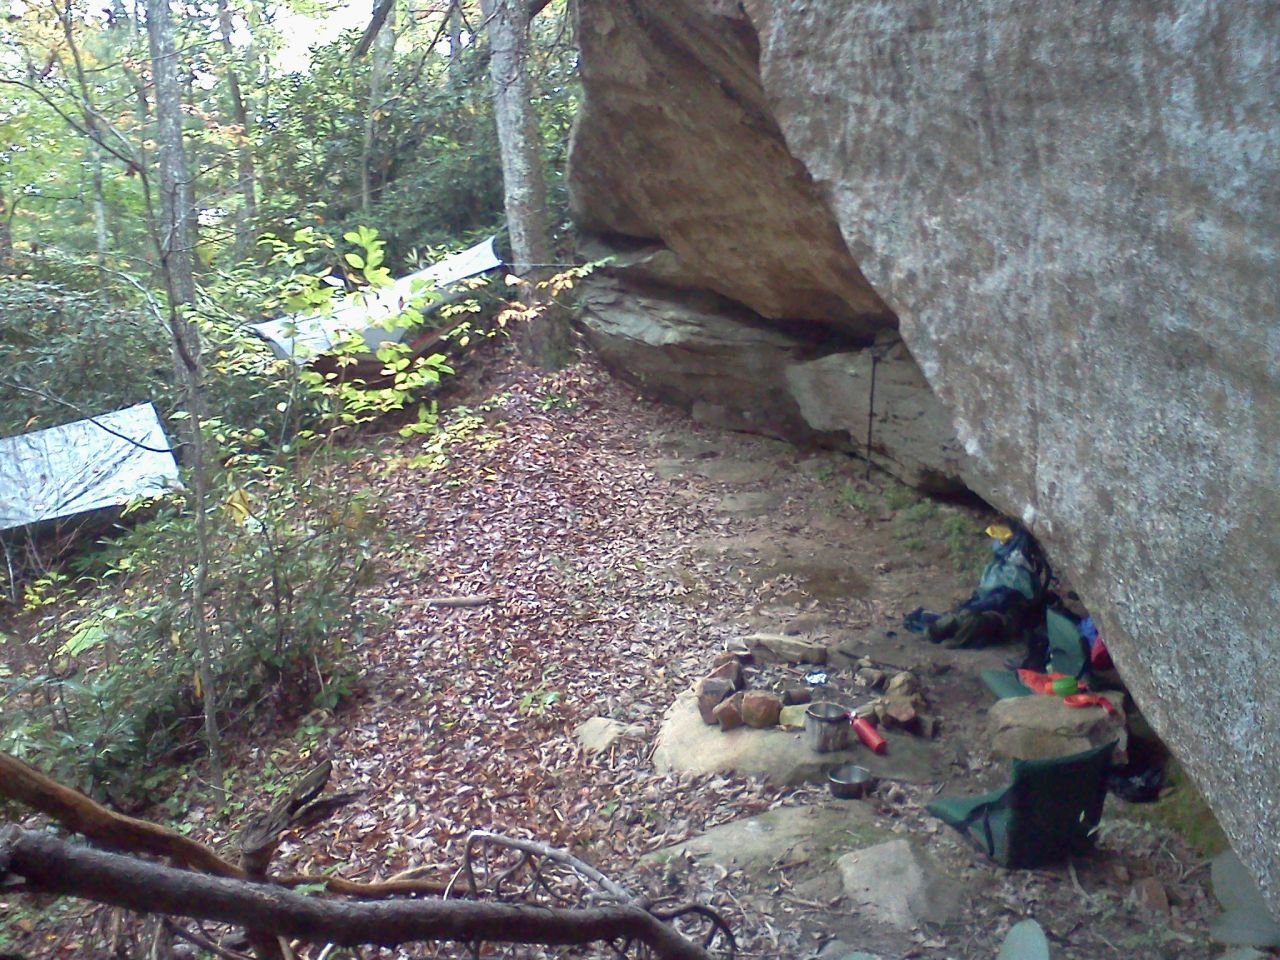 Red River Gorge, Ky Oct 2013